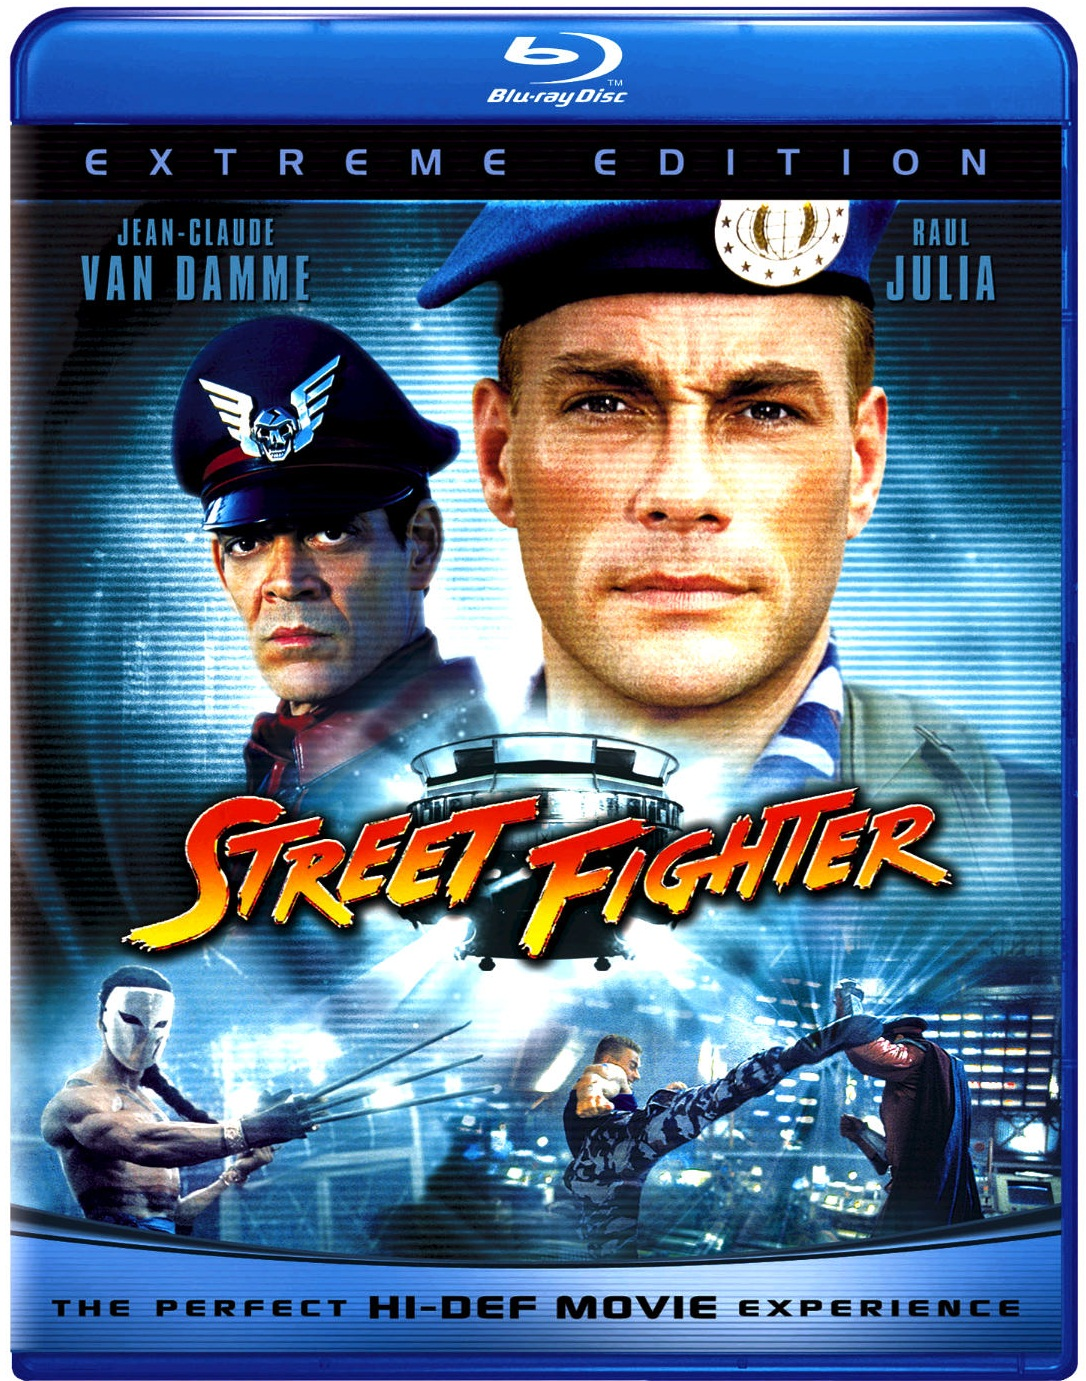 Street Fighter [Extreme Edition] [BD25] [1994] [Latino]